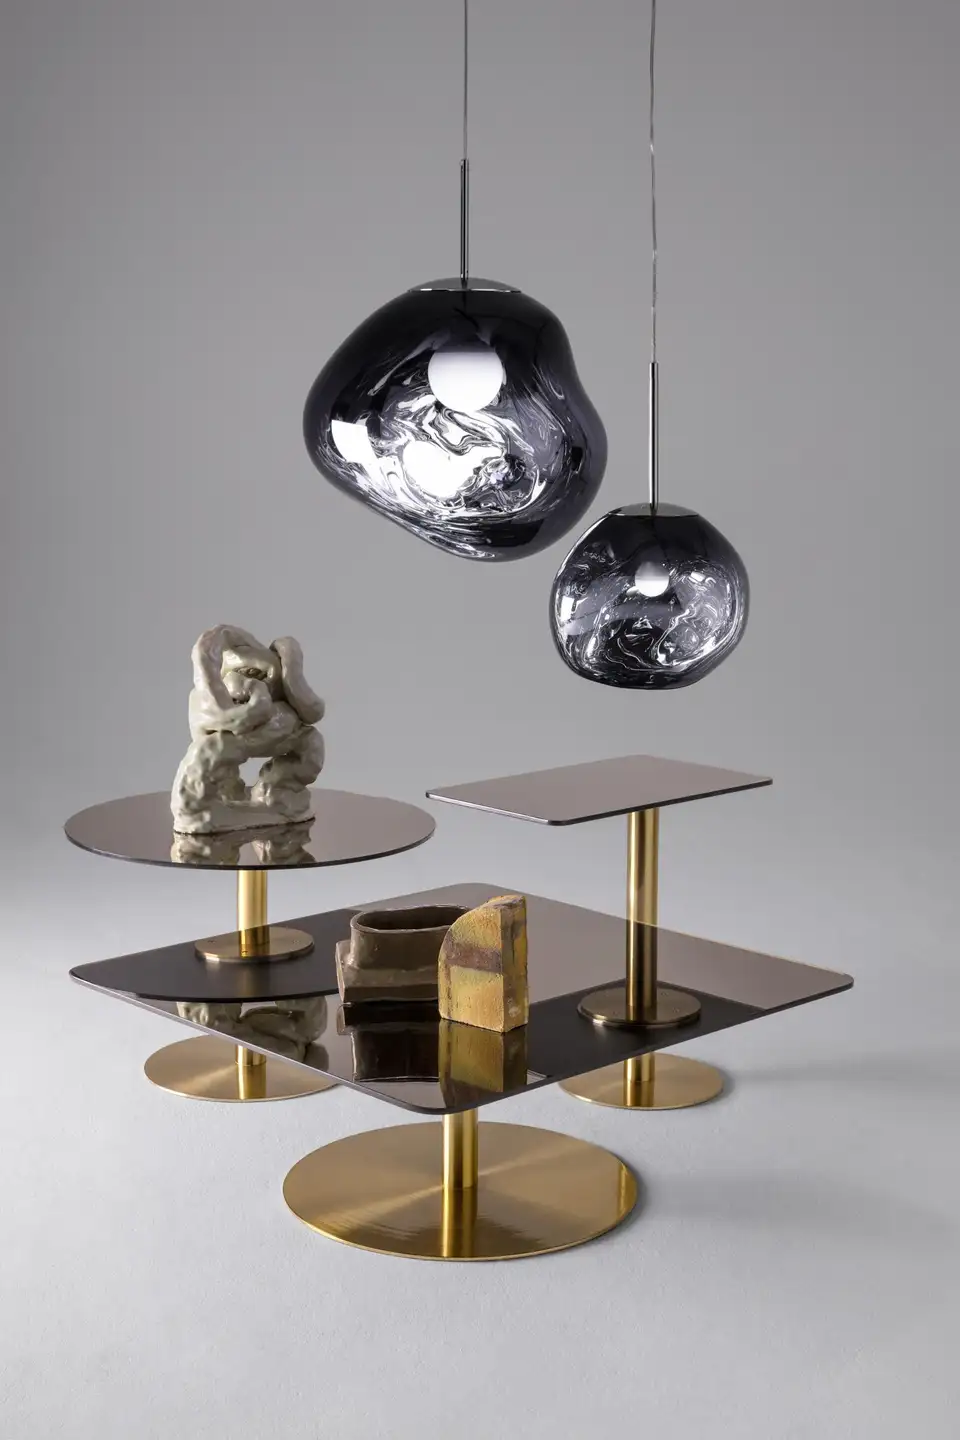 Flash Square Table By Tom Dixon In 2020 Floor Lamp Design Wall Lamp Design Square Tables